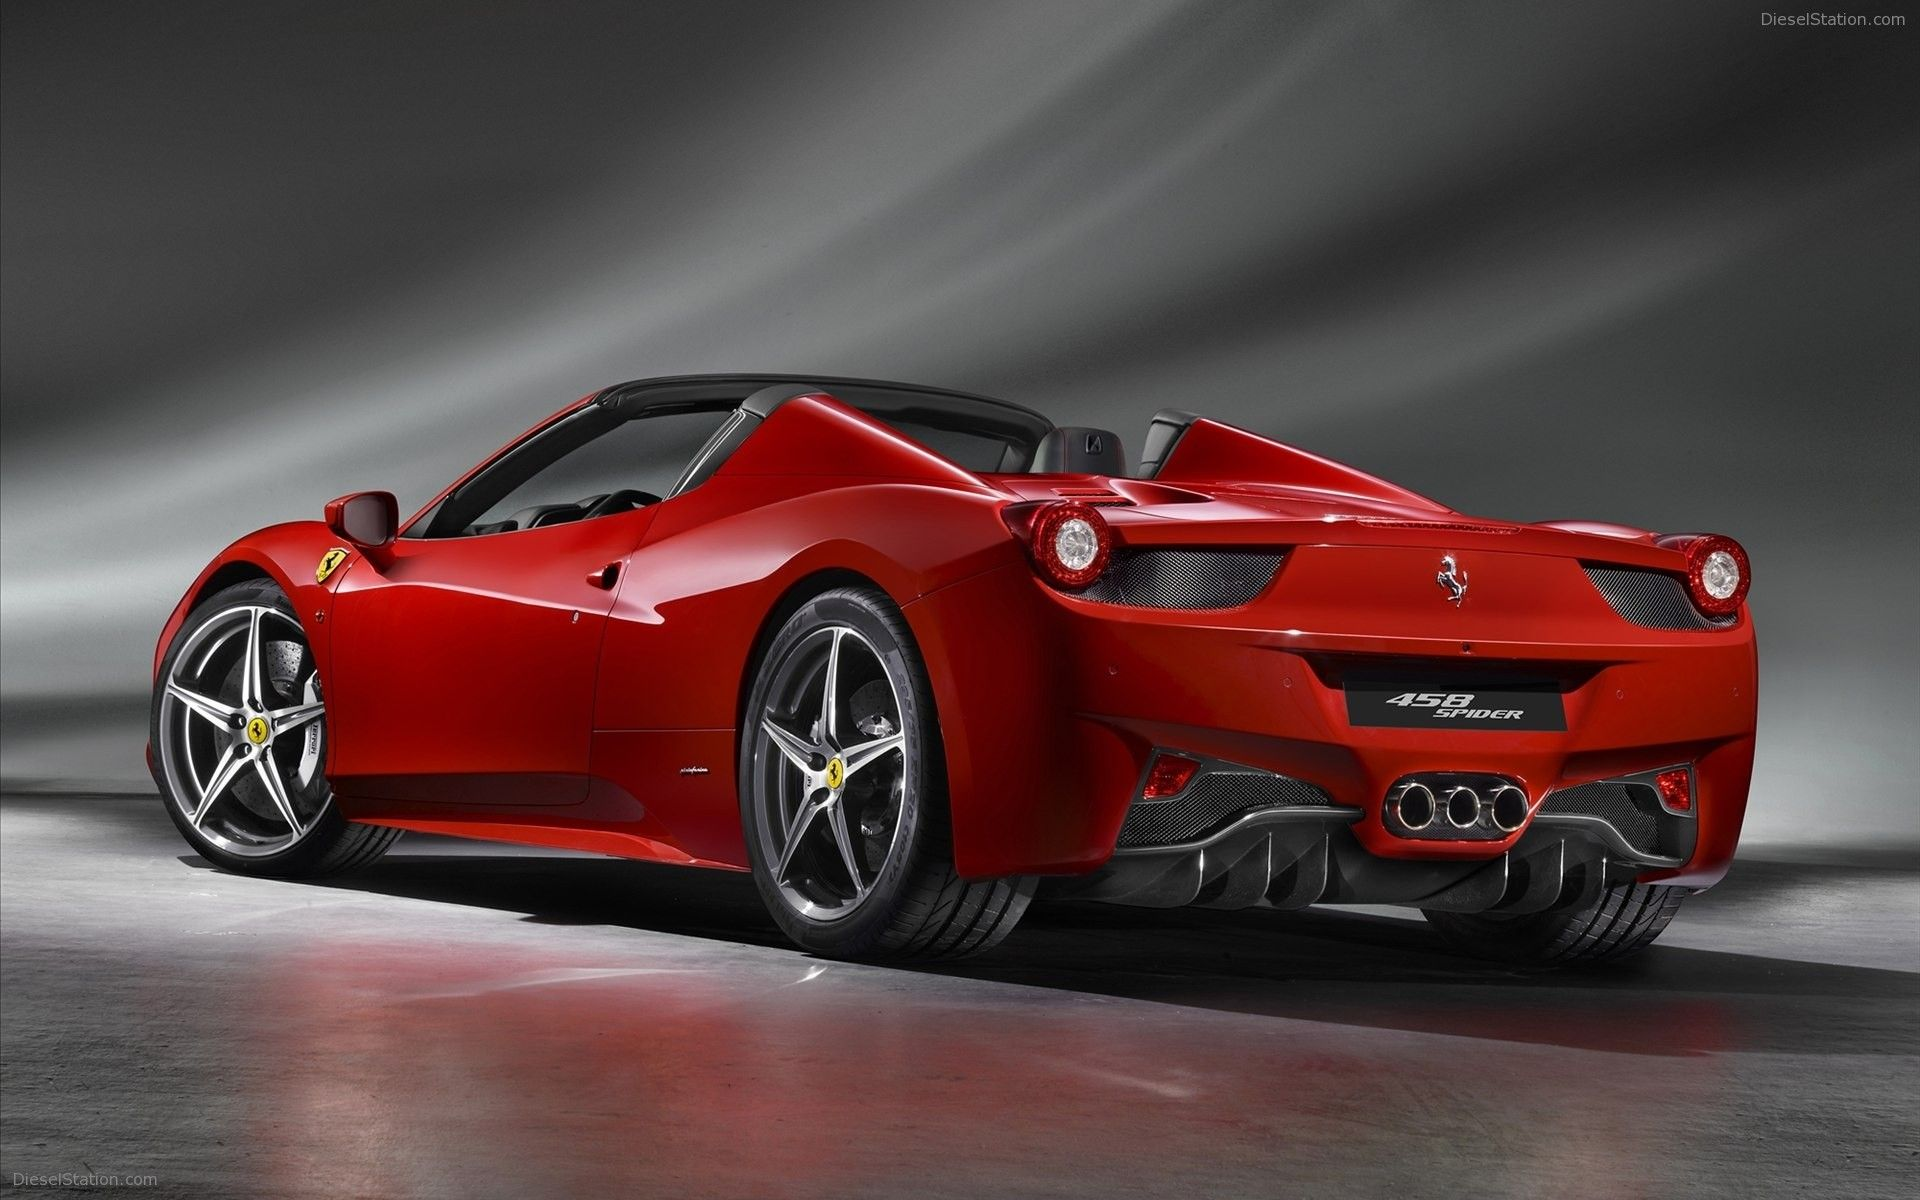 Awesome Exotic Car Wallpapers - Top Free Awesome Exotic ...